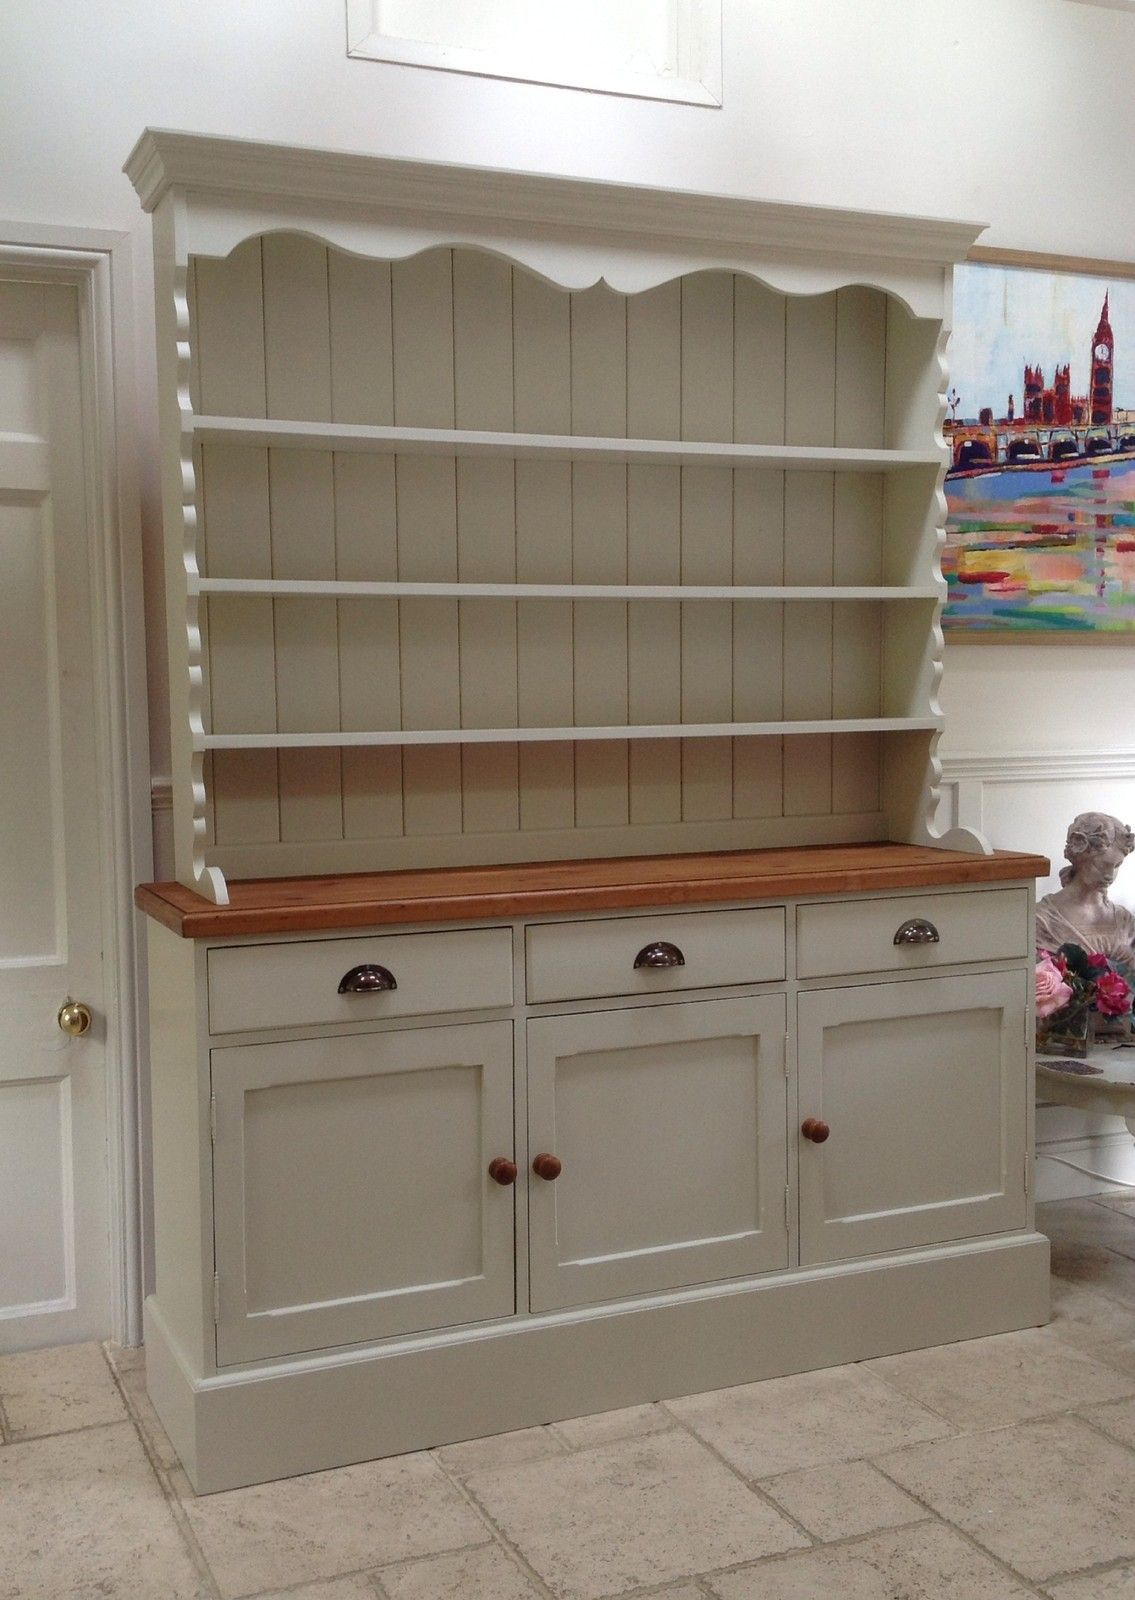 Kitchen Sideboard Details About Hand Painted Dresser Cream Solid Pine Welsh Dresser